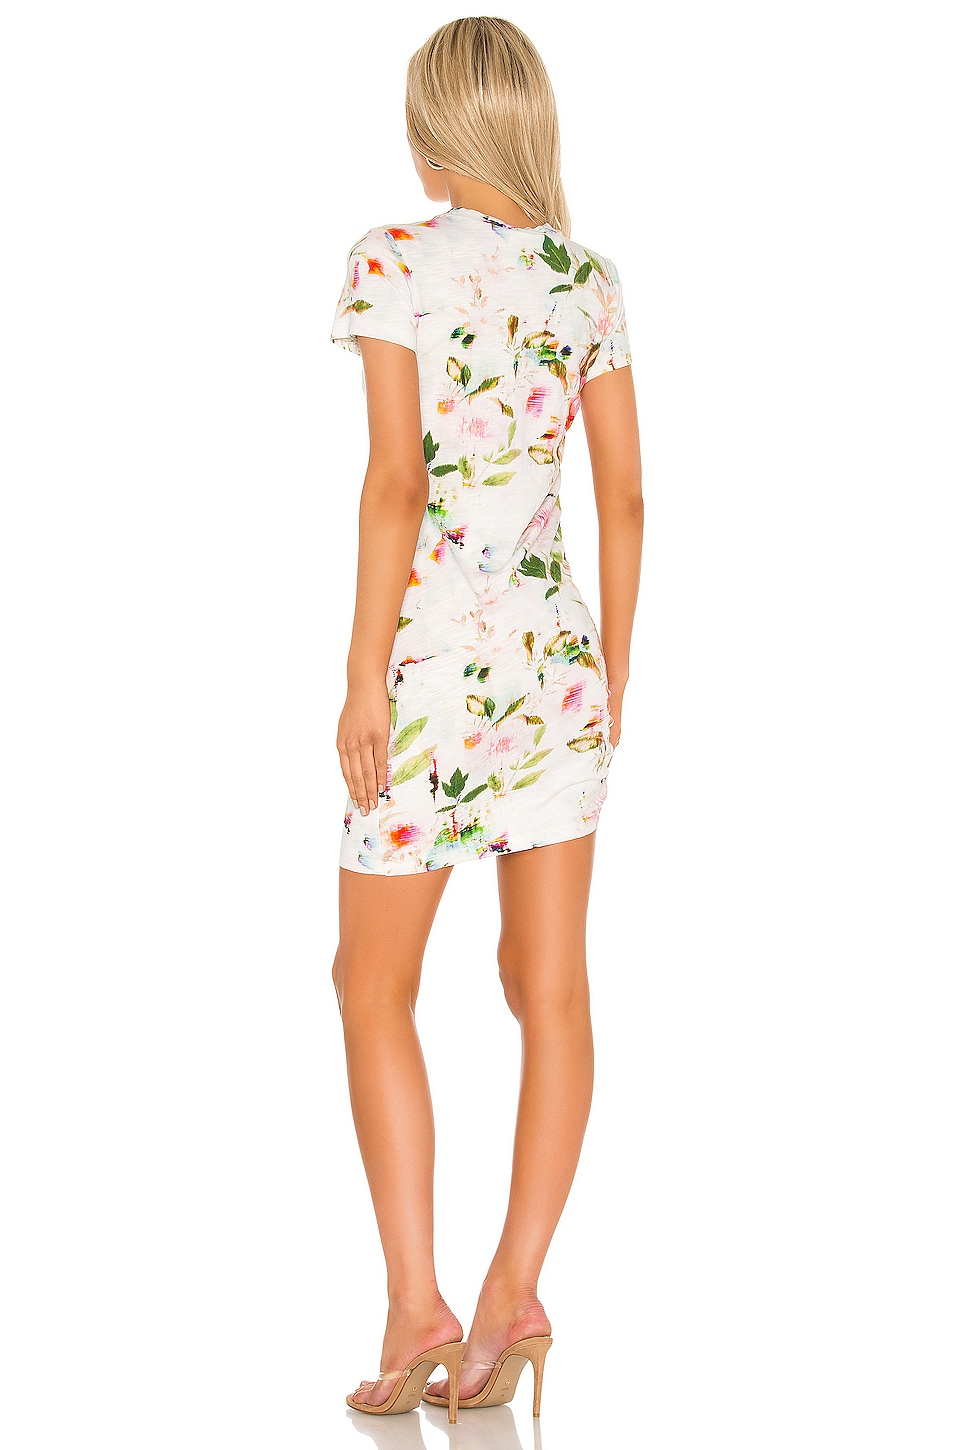 Short Sleeve Side Shirred Mini Dress, view 3, click to view large image.